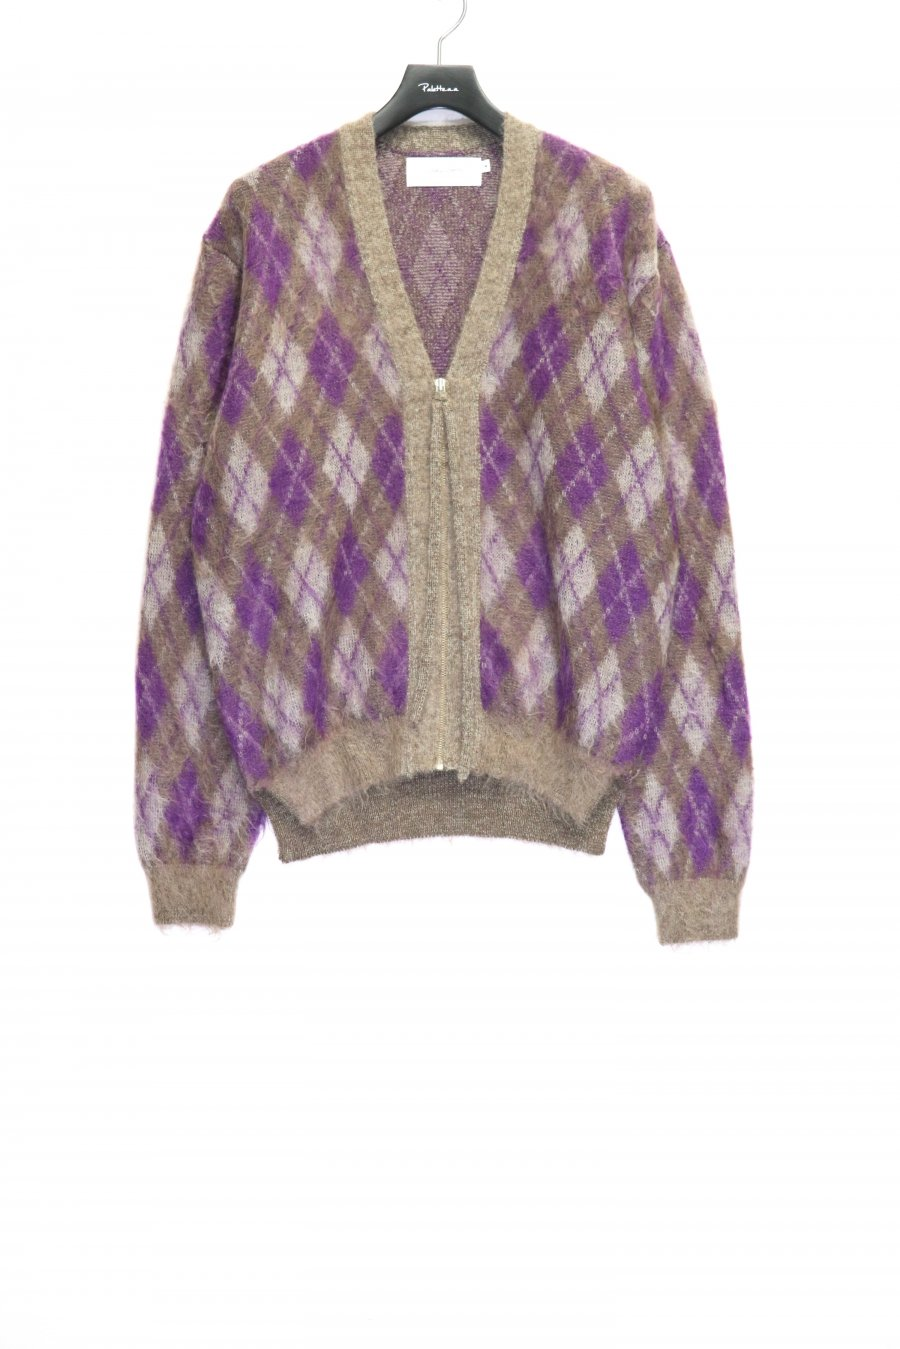 JOHN MASON SMITH × PALETTE a a Exclusive Cardigan<img class='new_mark_img2' src='https://img.shop-pro.jp/img/new/icons15.gif' style='border:none;display:inline;margin:0px;padding:0px;width:auto;' />